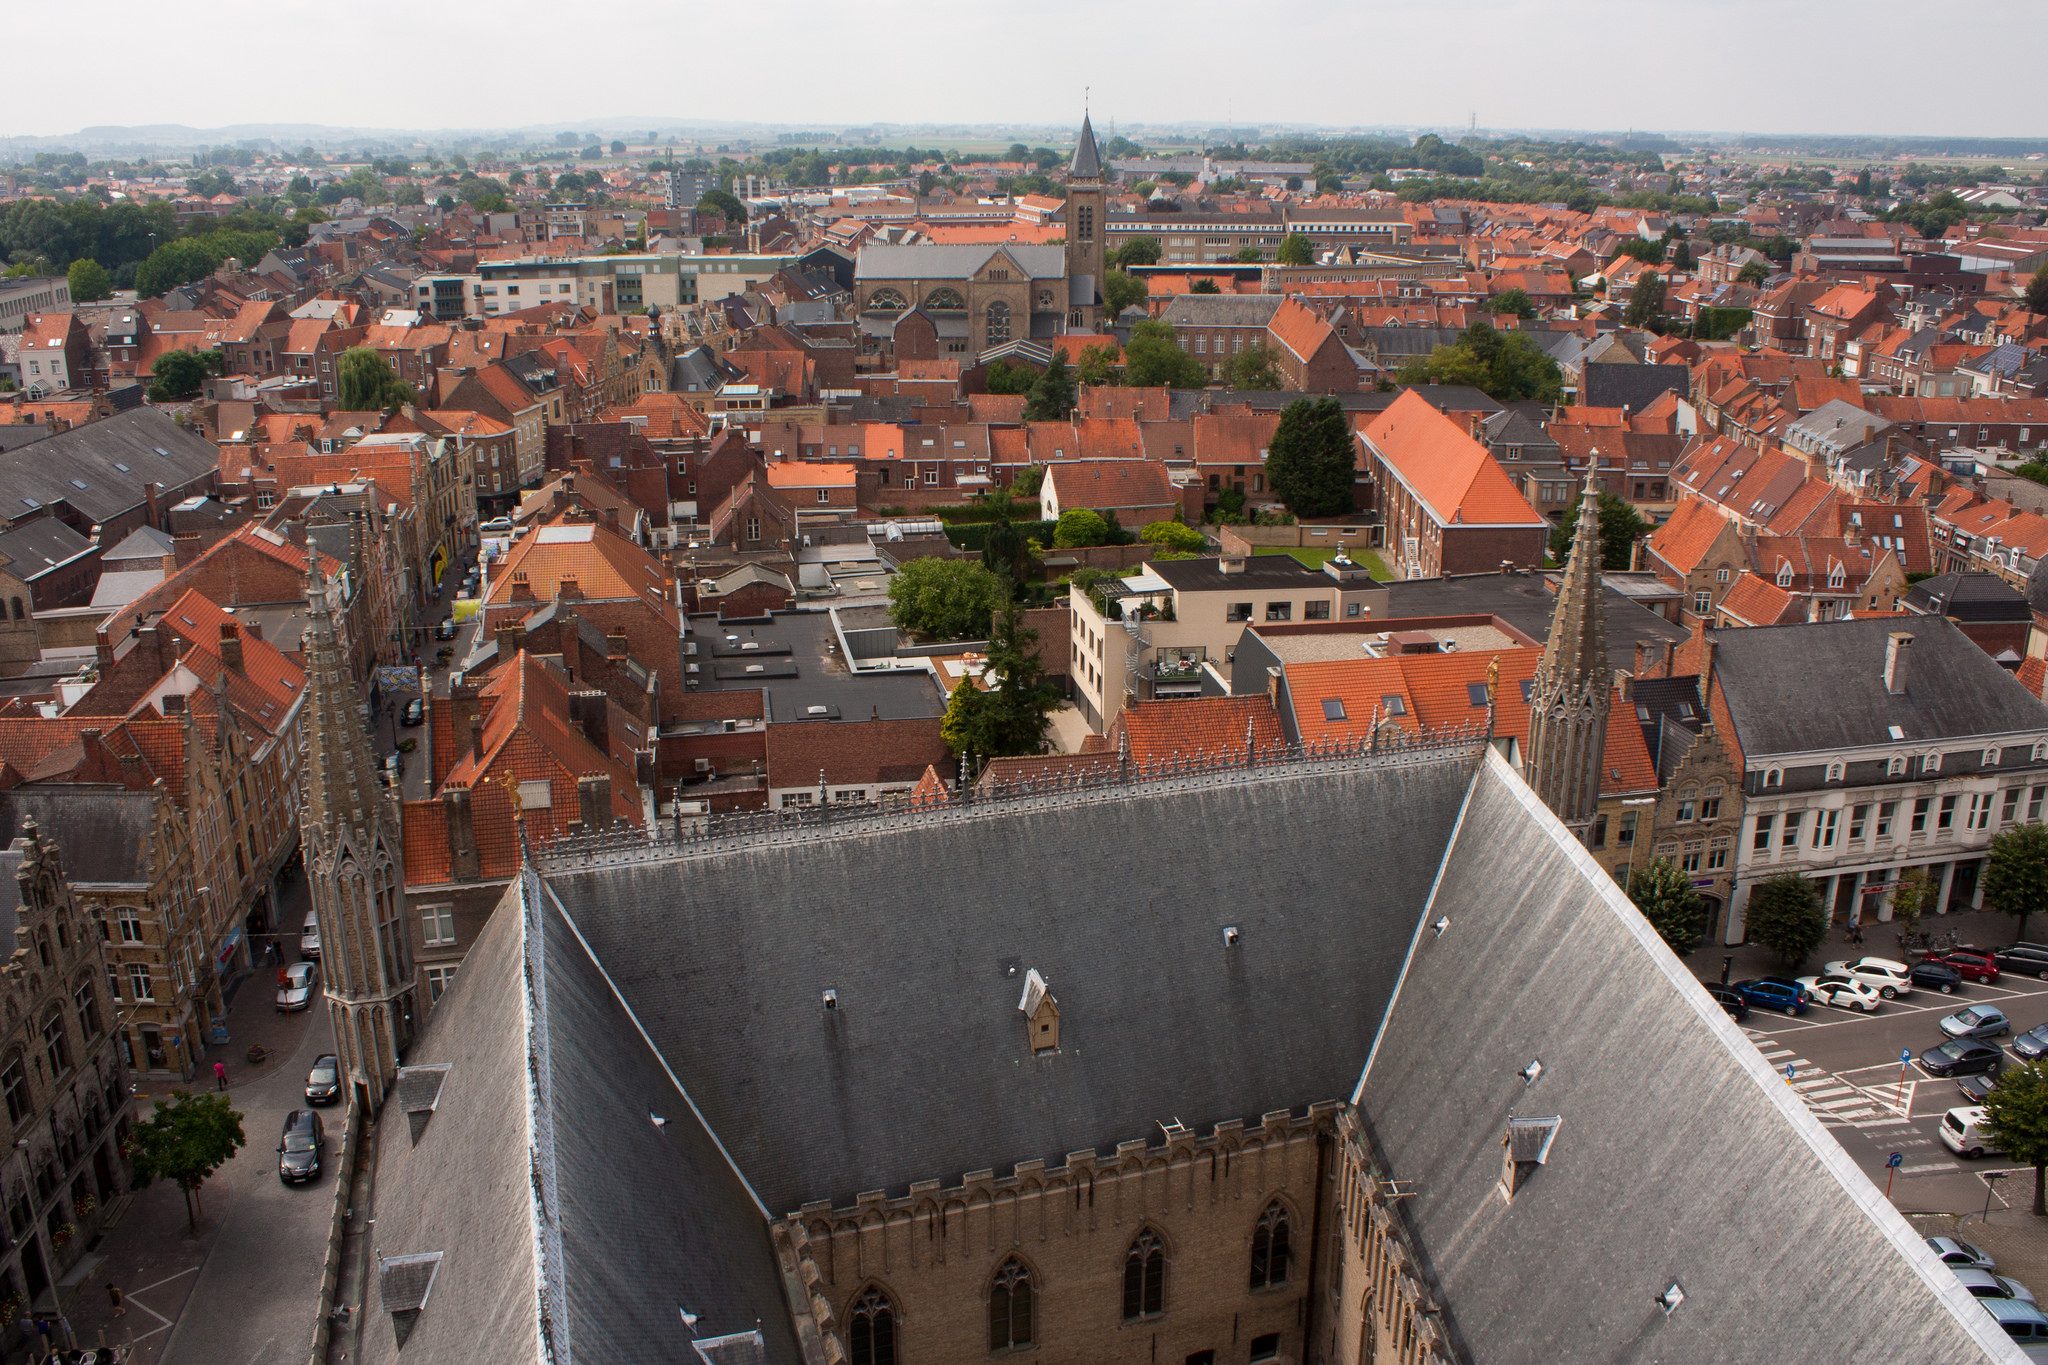 View from the top of Cloth Hall, Ypres